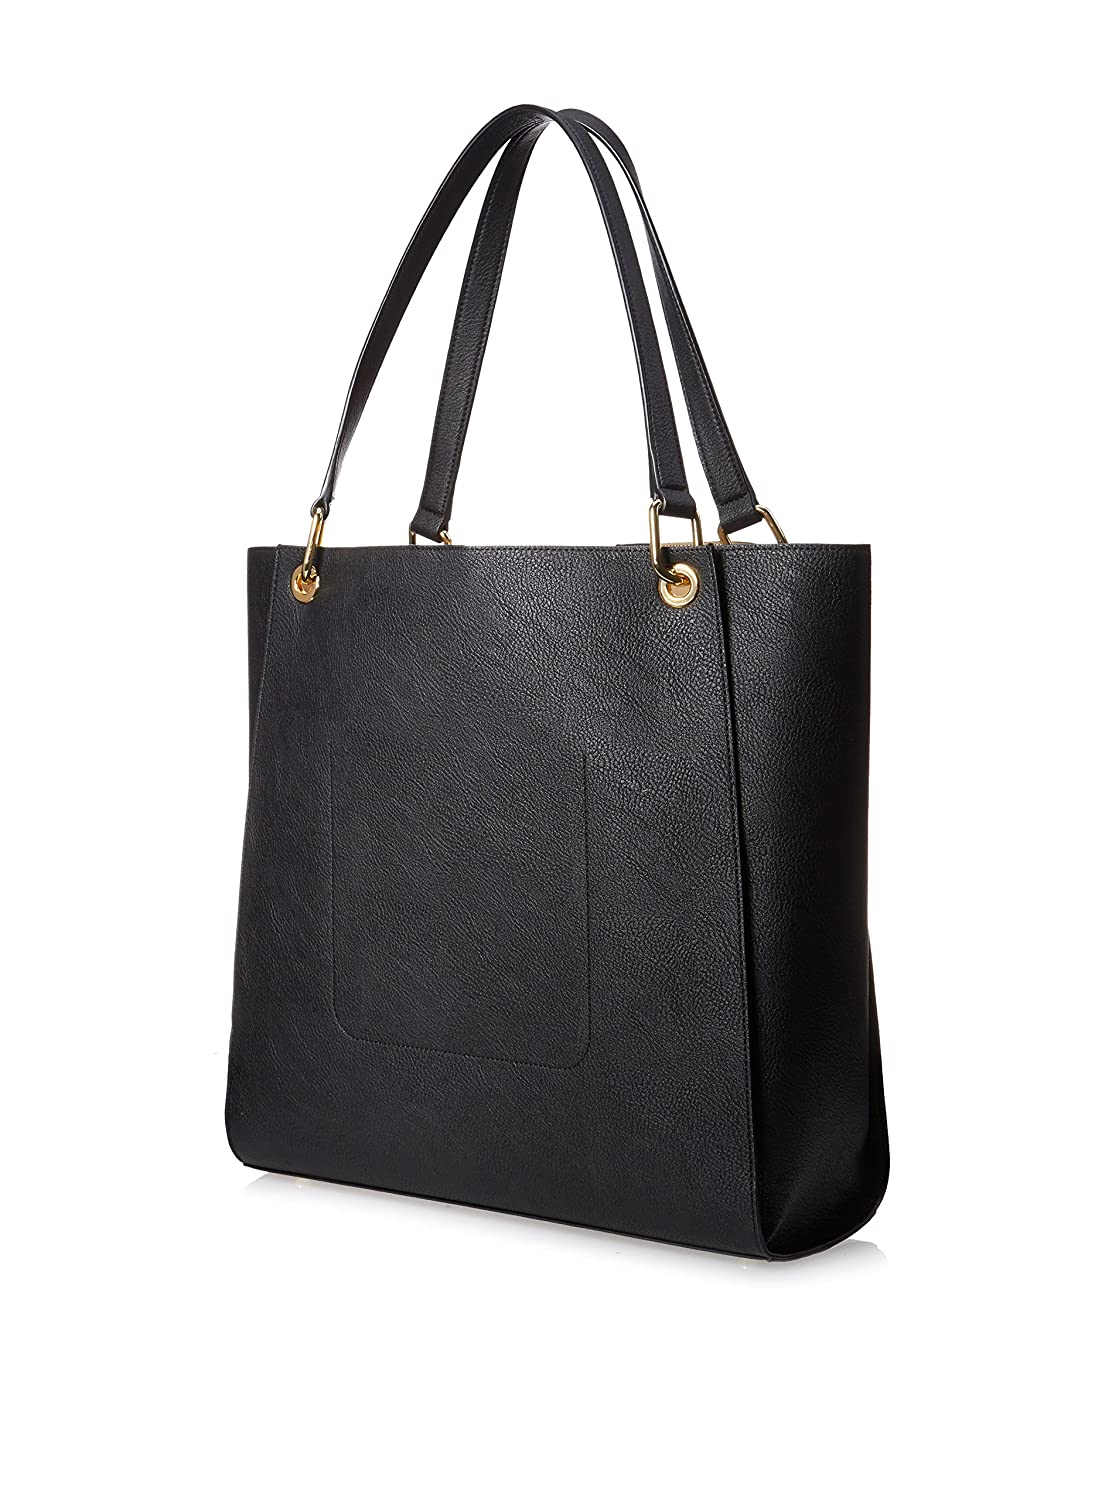 1f7d3e5ce60 Ralph Lauren Aiden Tote Handbag In Black RRP £165  Amazon.co.uk  Shoes    Bags